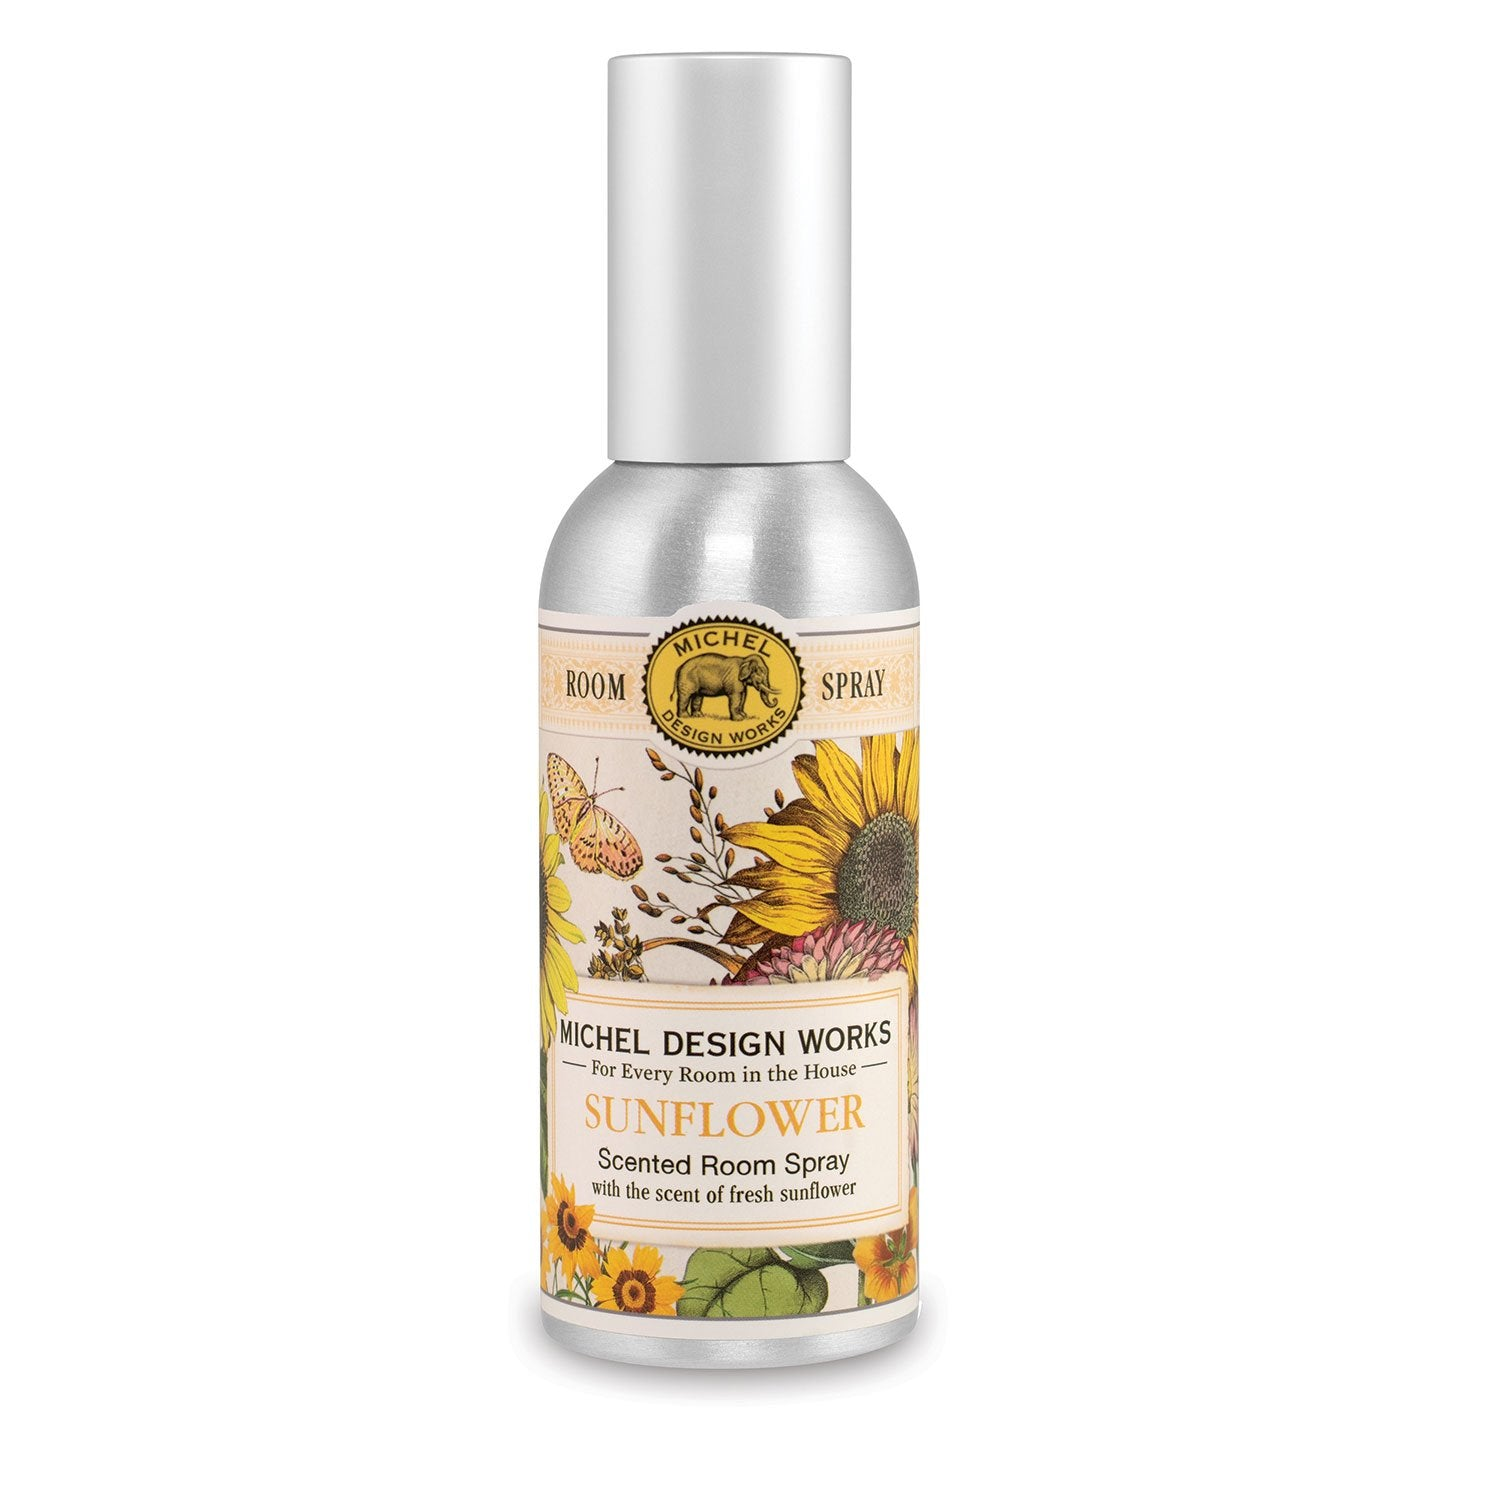 Sunflower Room Spray